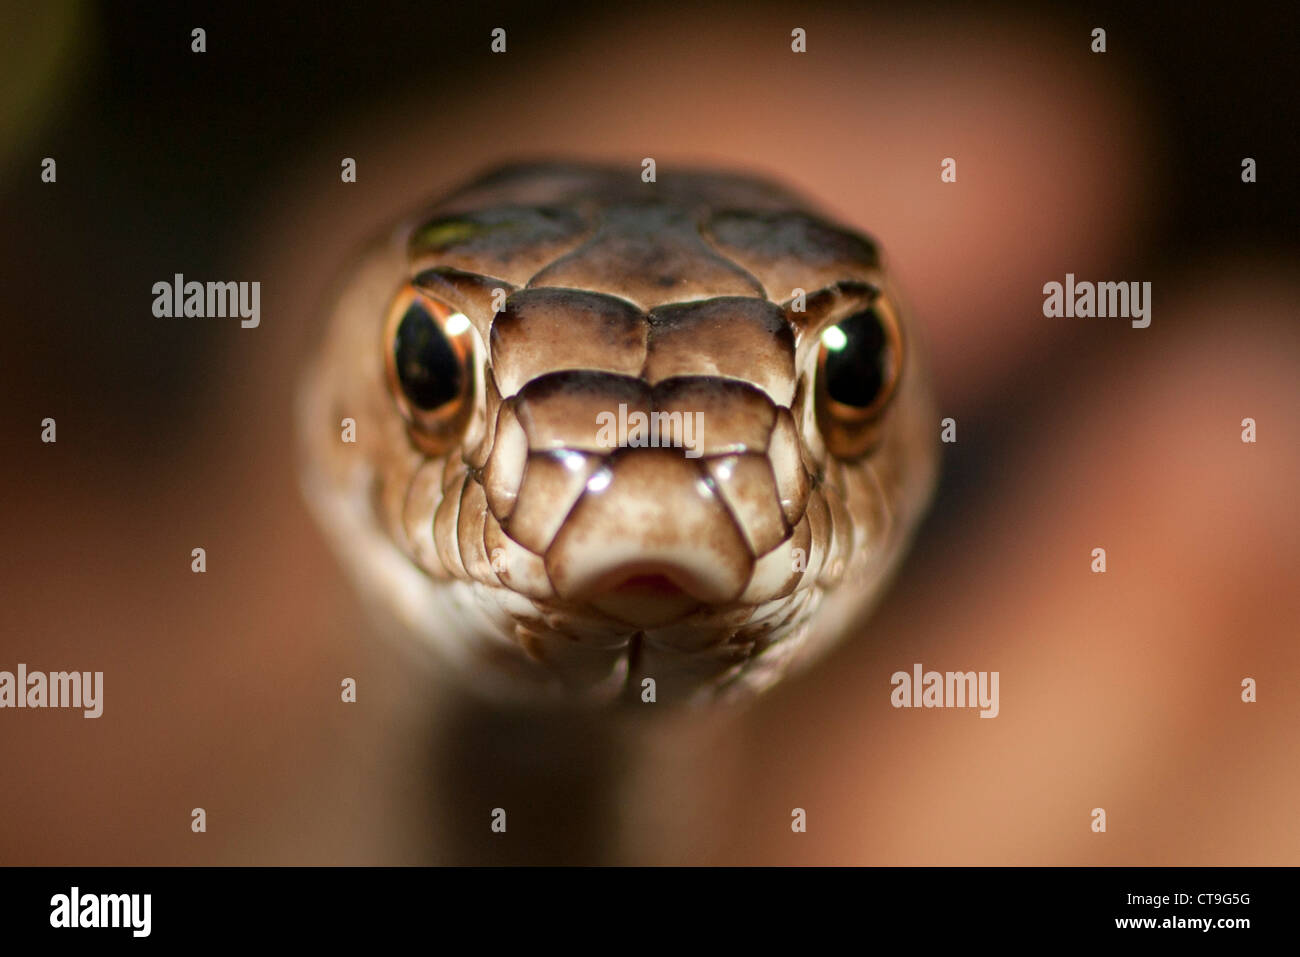 Close-up of a coachwhip snake (Masicophis flagellum) Stock Photo